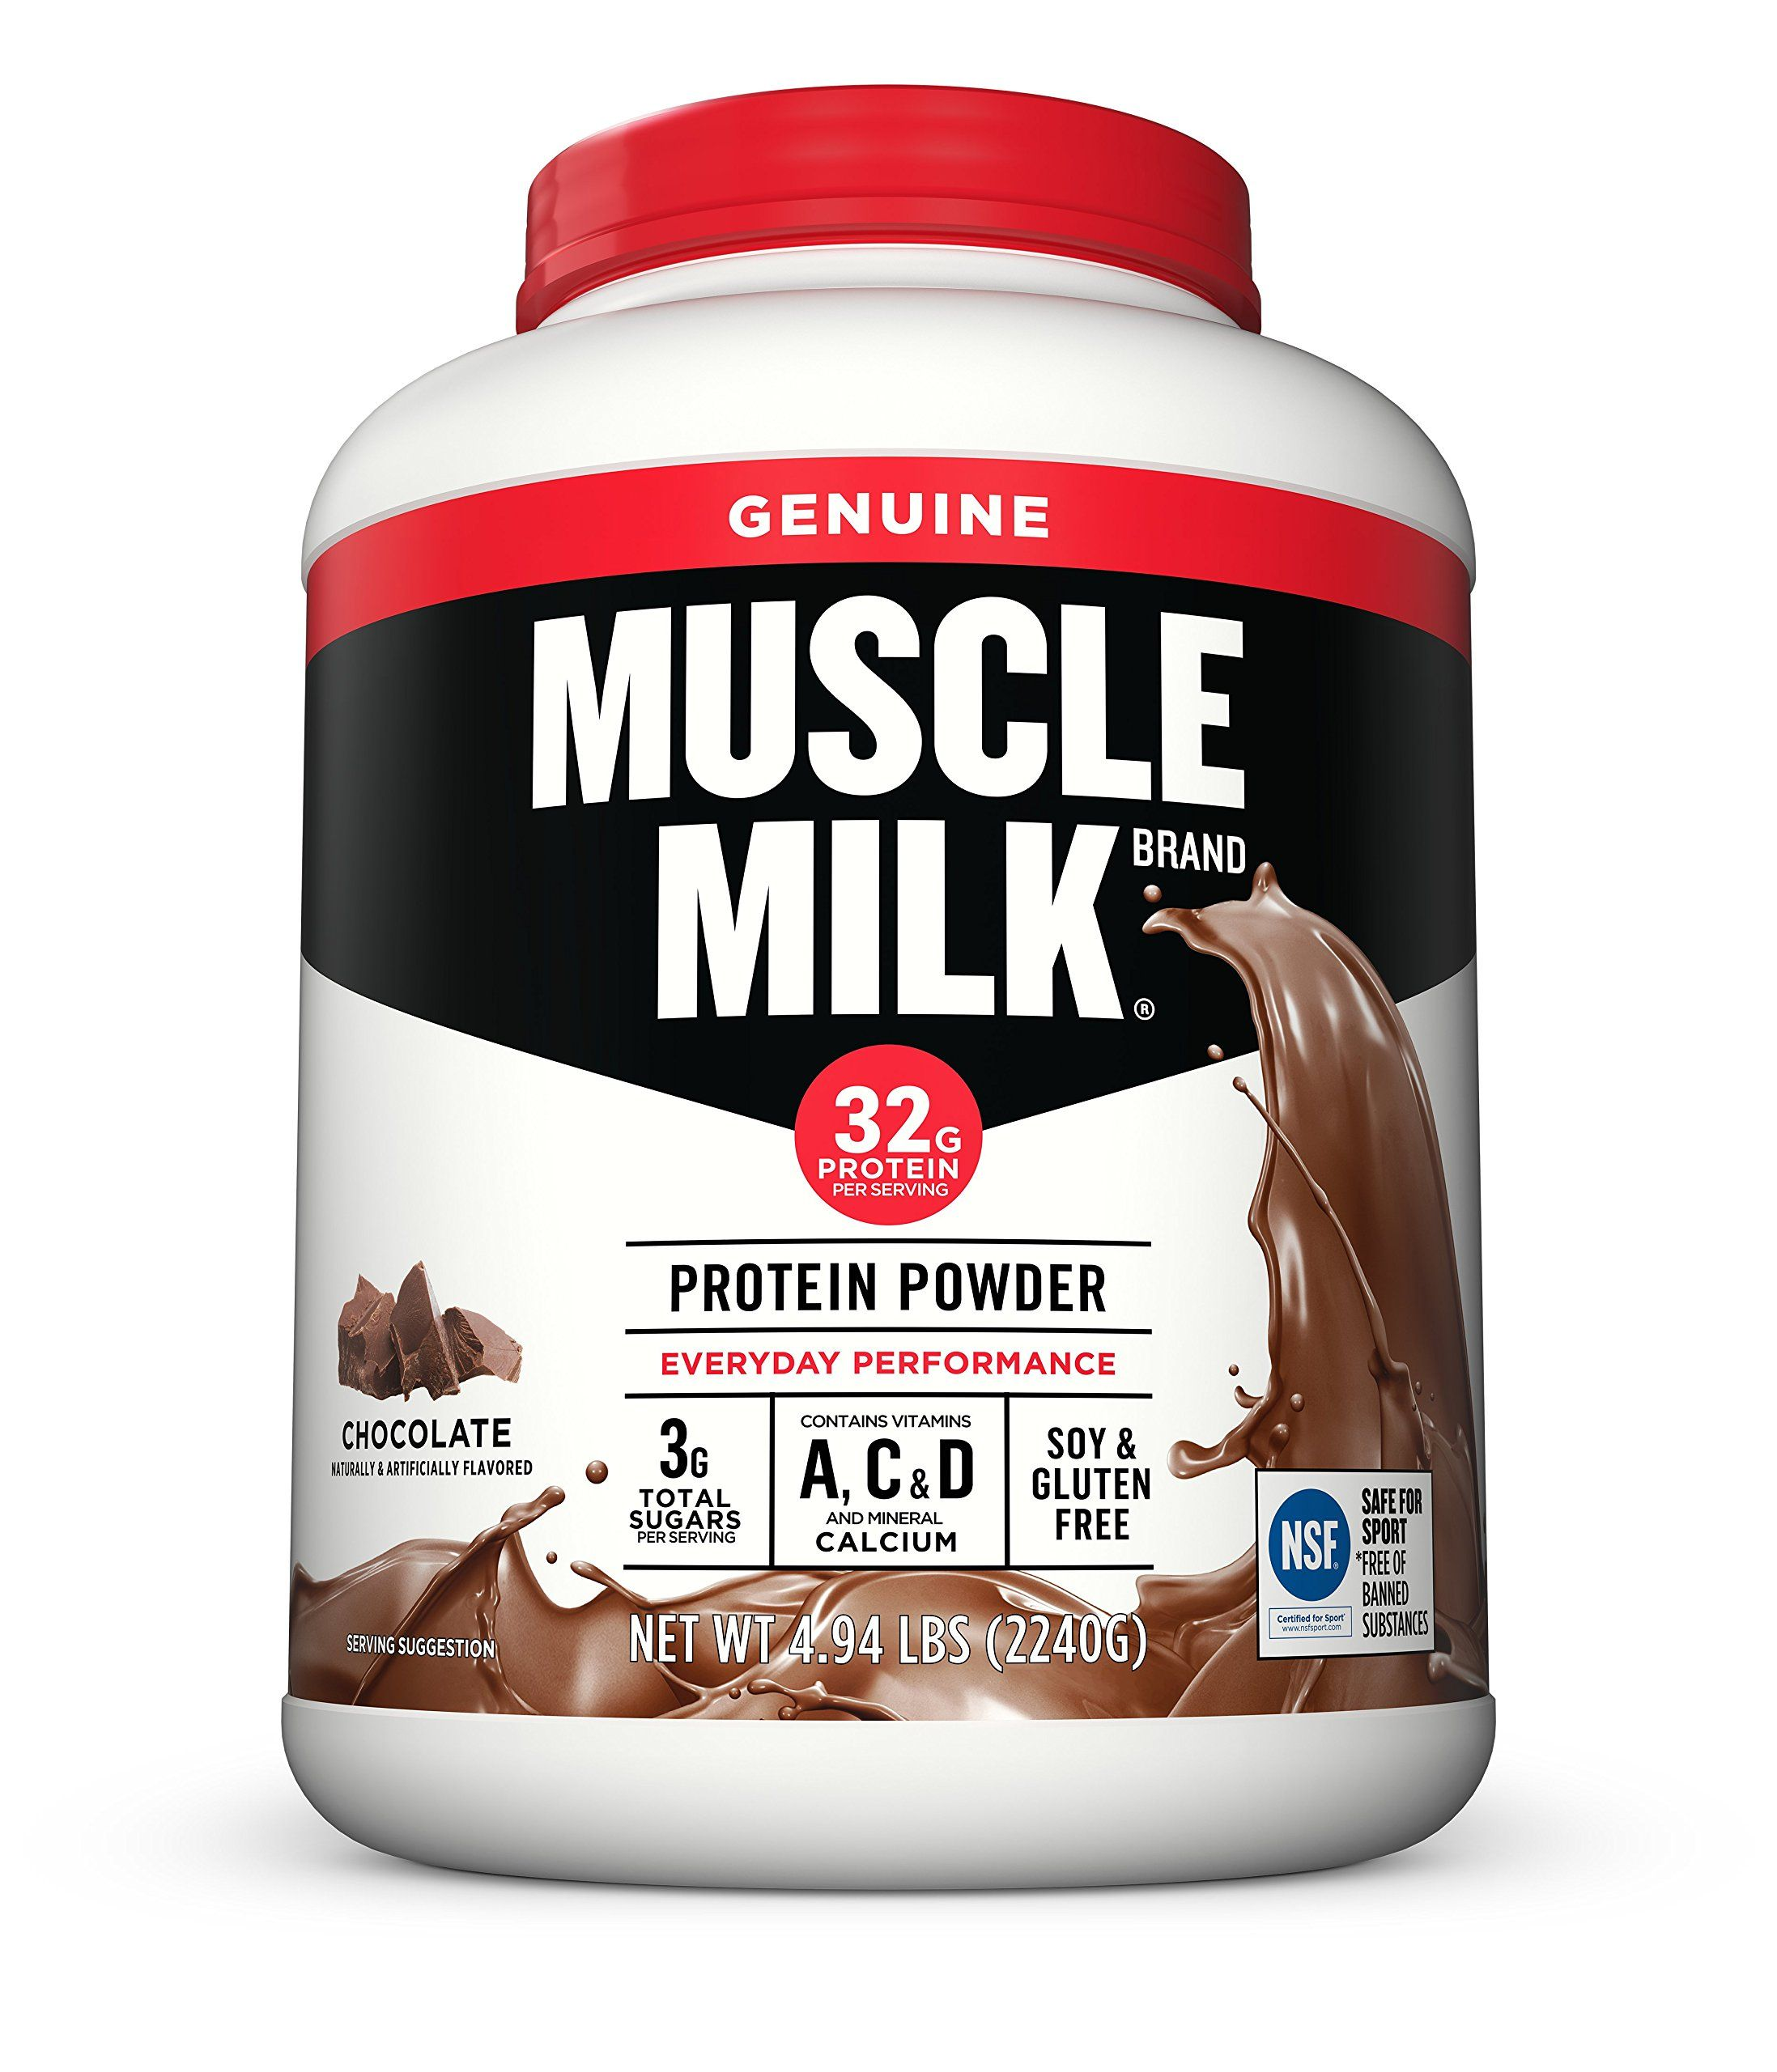 Muscle Milk Genuine Protein Powder Chocolate 32g Protein 4 94 Pound Read More Reviews Of The Product By Vi Muscle Milk Natural Protein Powder Protein Powder